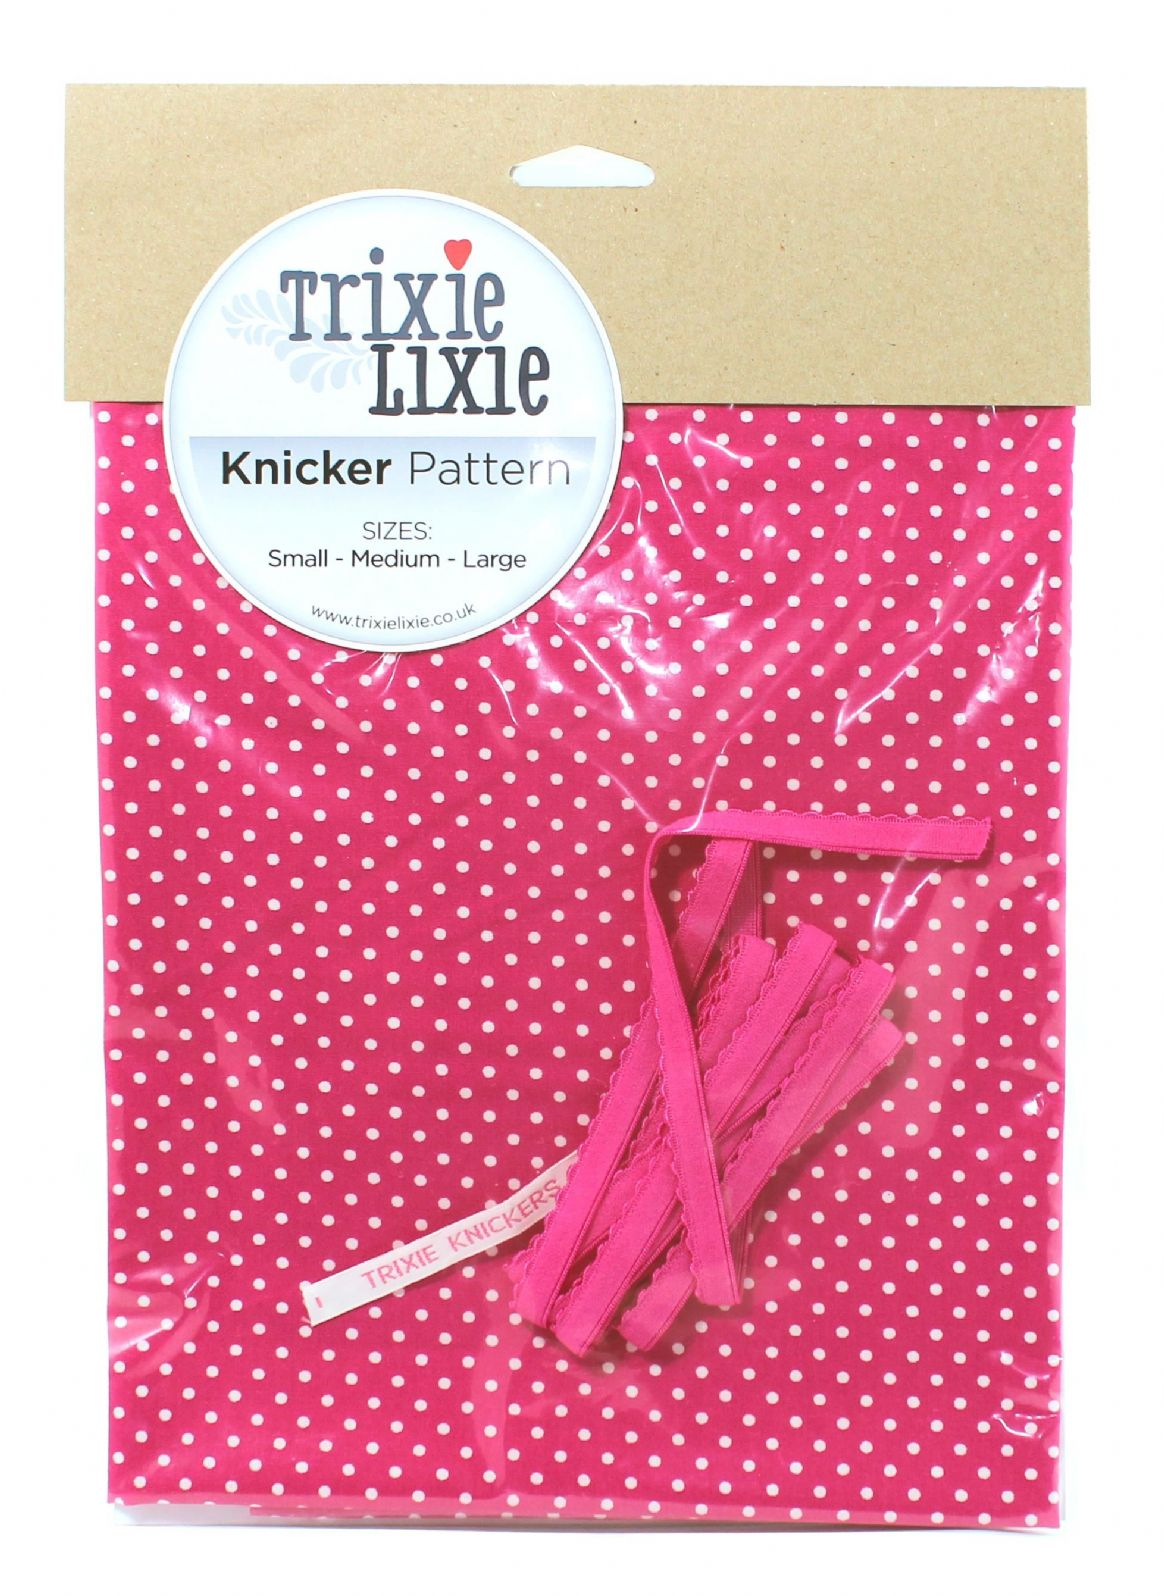 cerise spot knicker kit